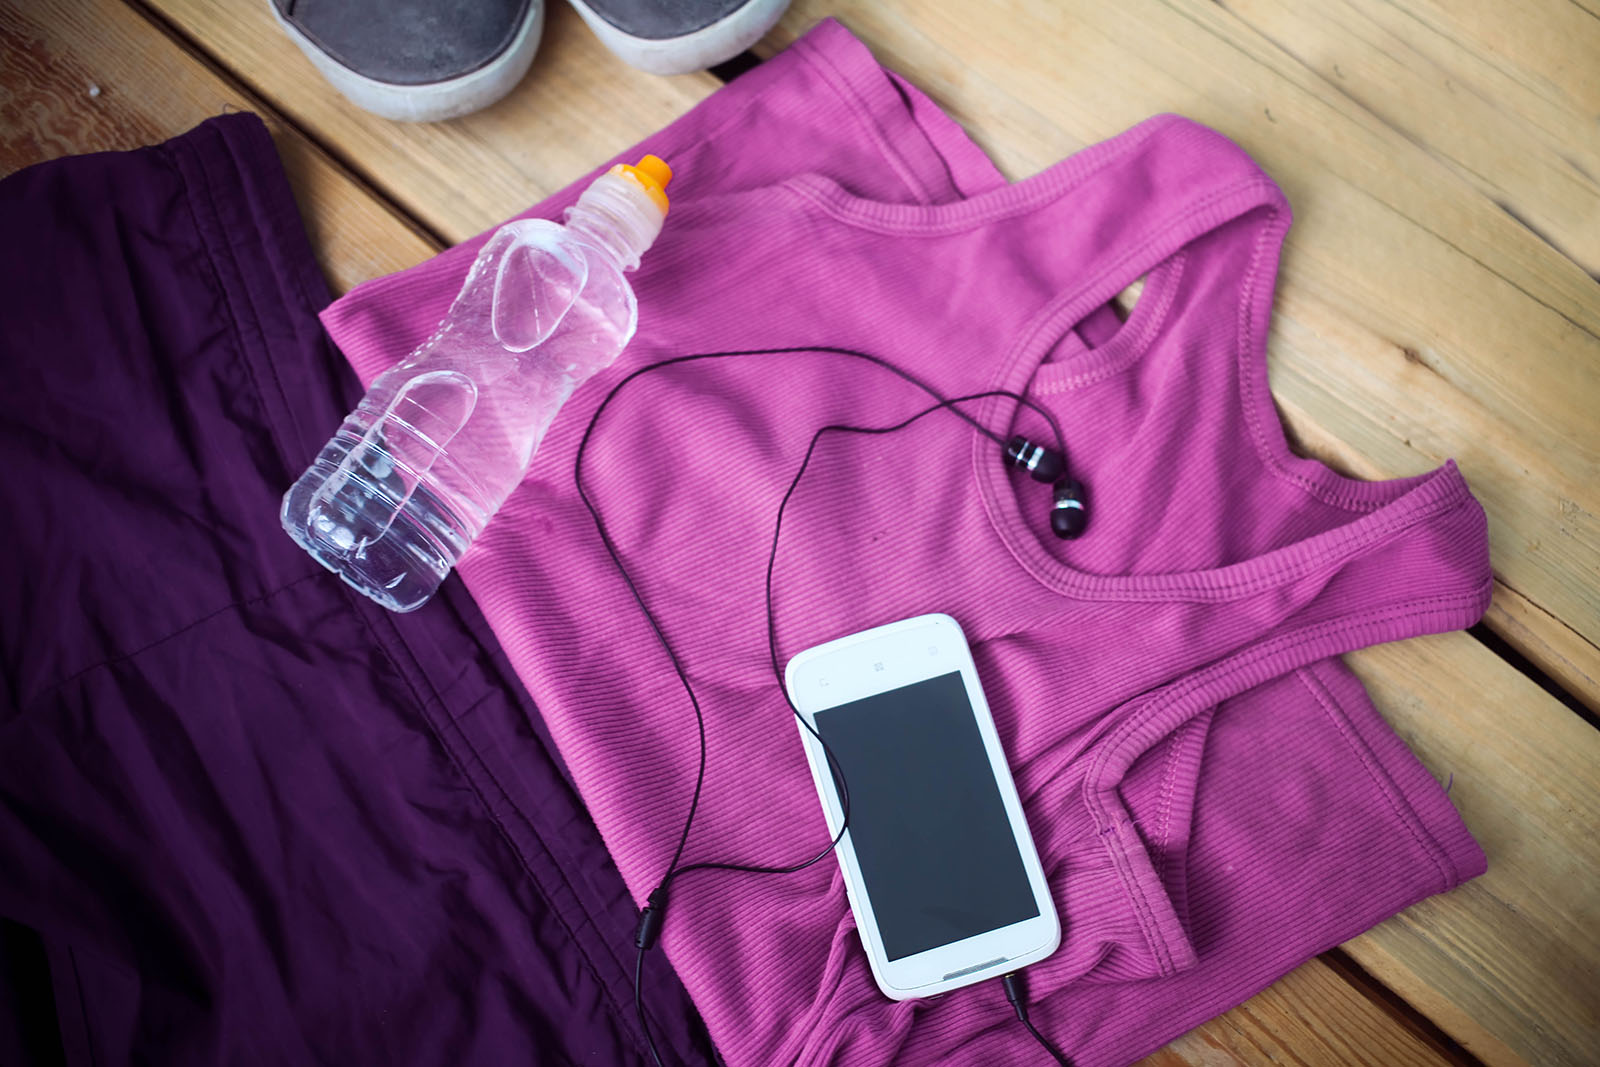 Exercise clothes, phone and headphones